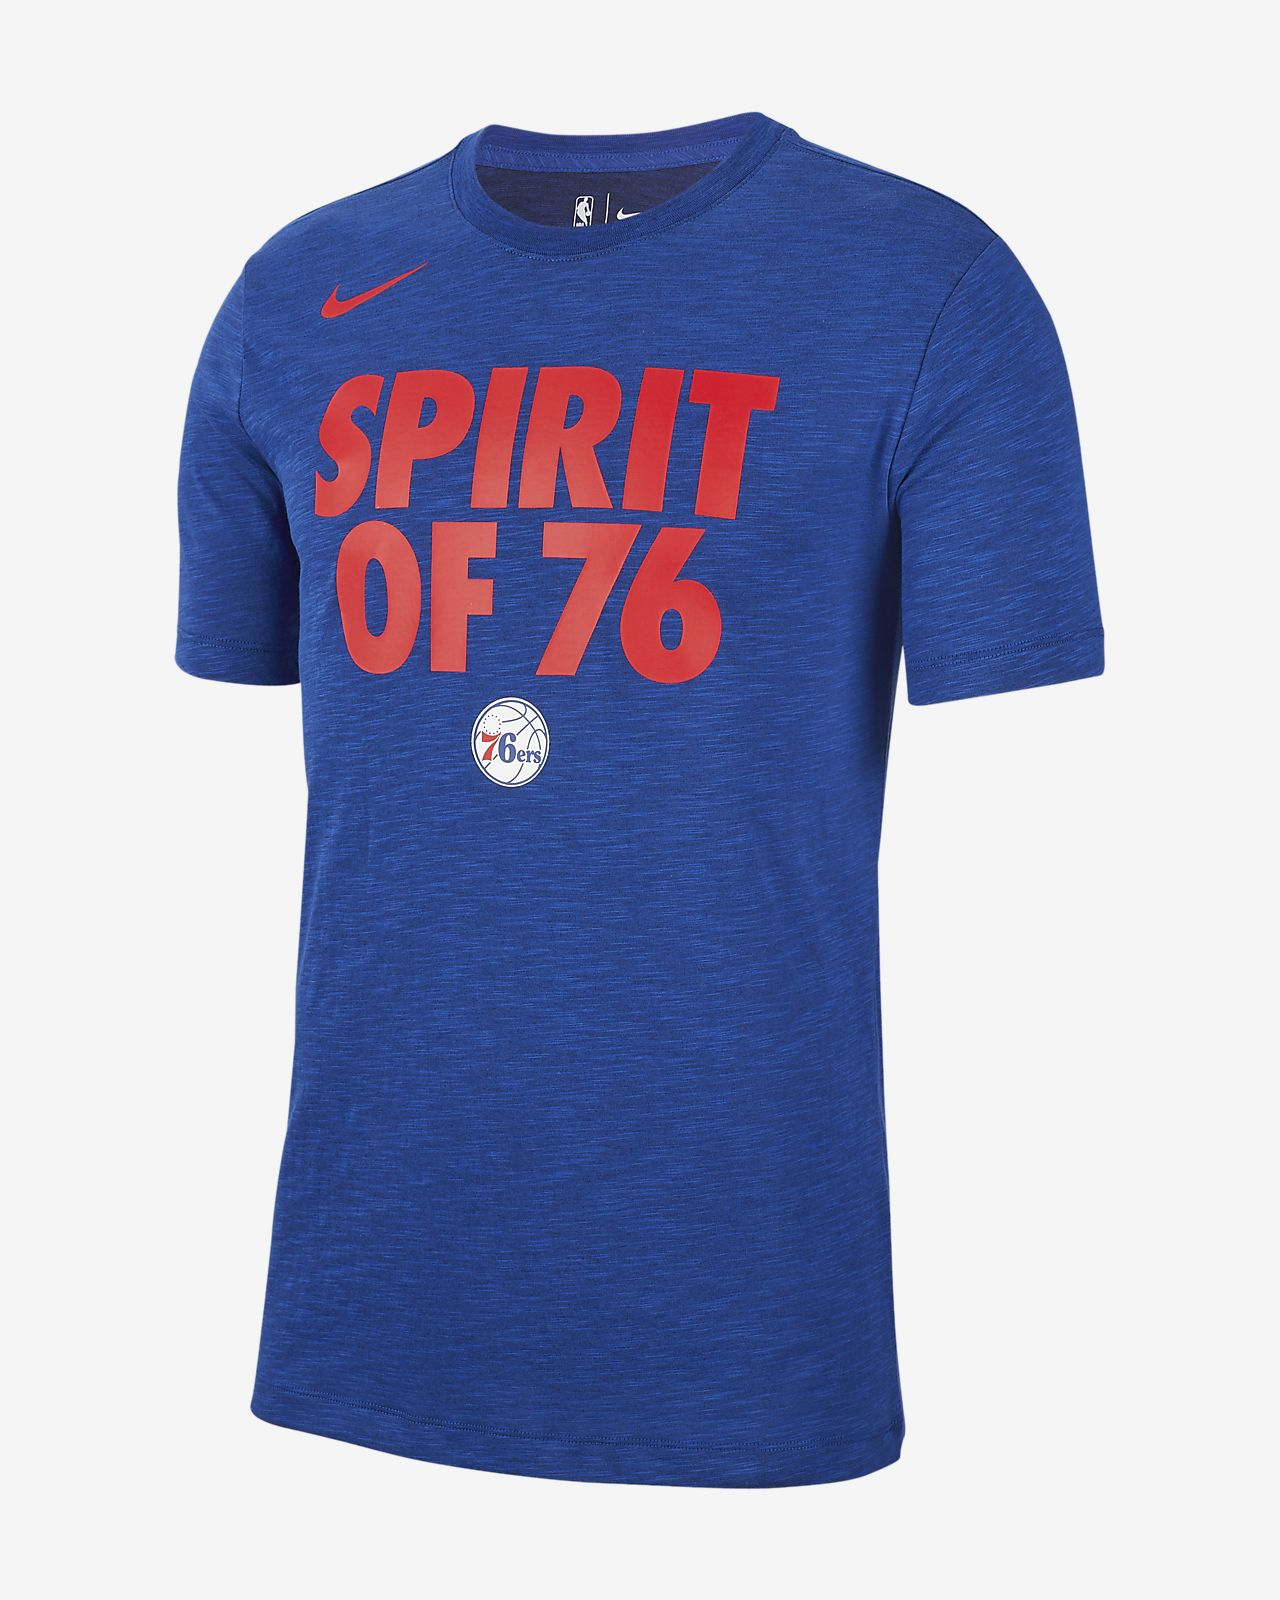 89c4bd8fcba9 Philadelphia 76ers Nike Dri-FIT Men s NBA T-Shirt. Nike.com